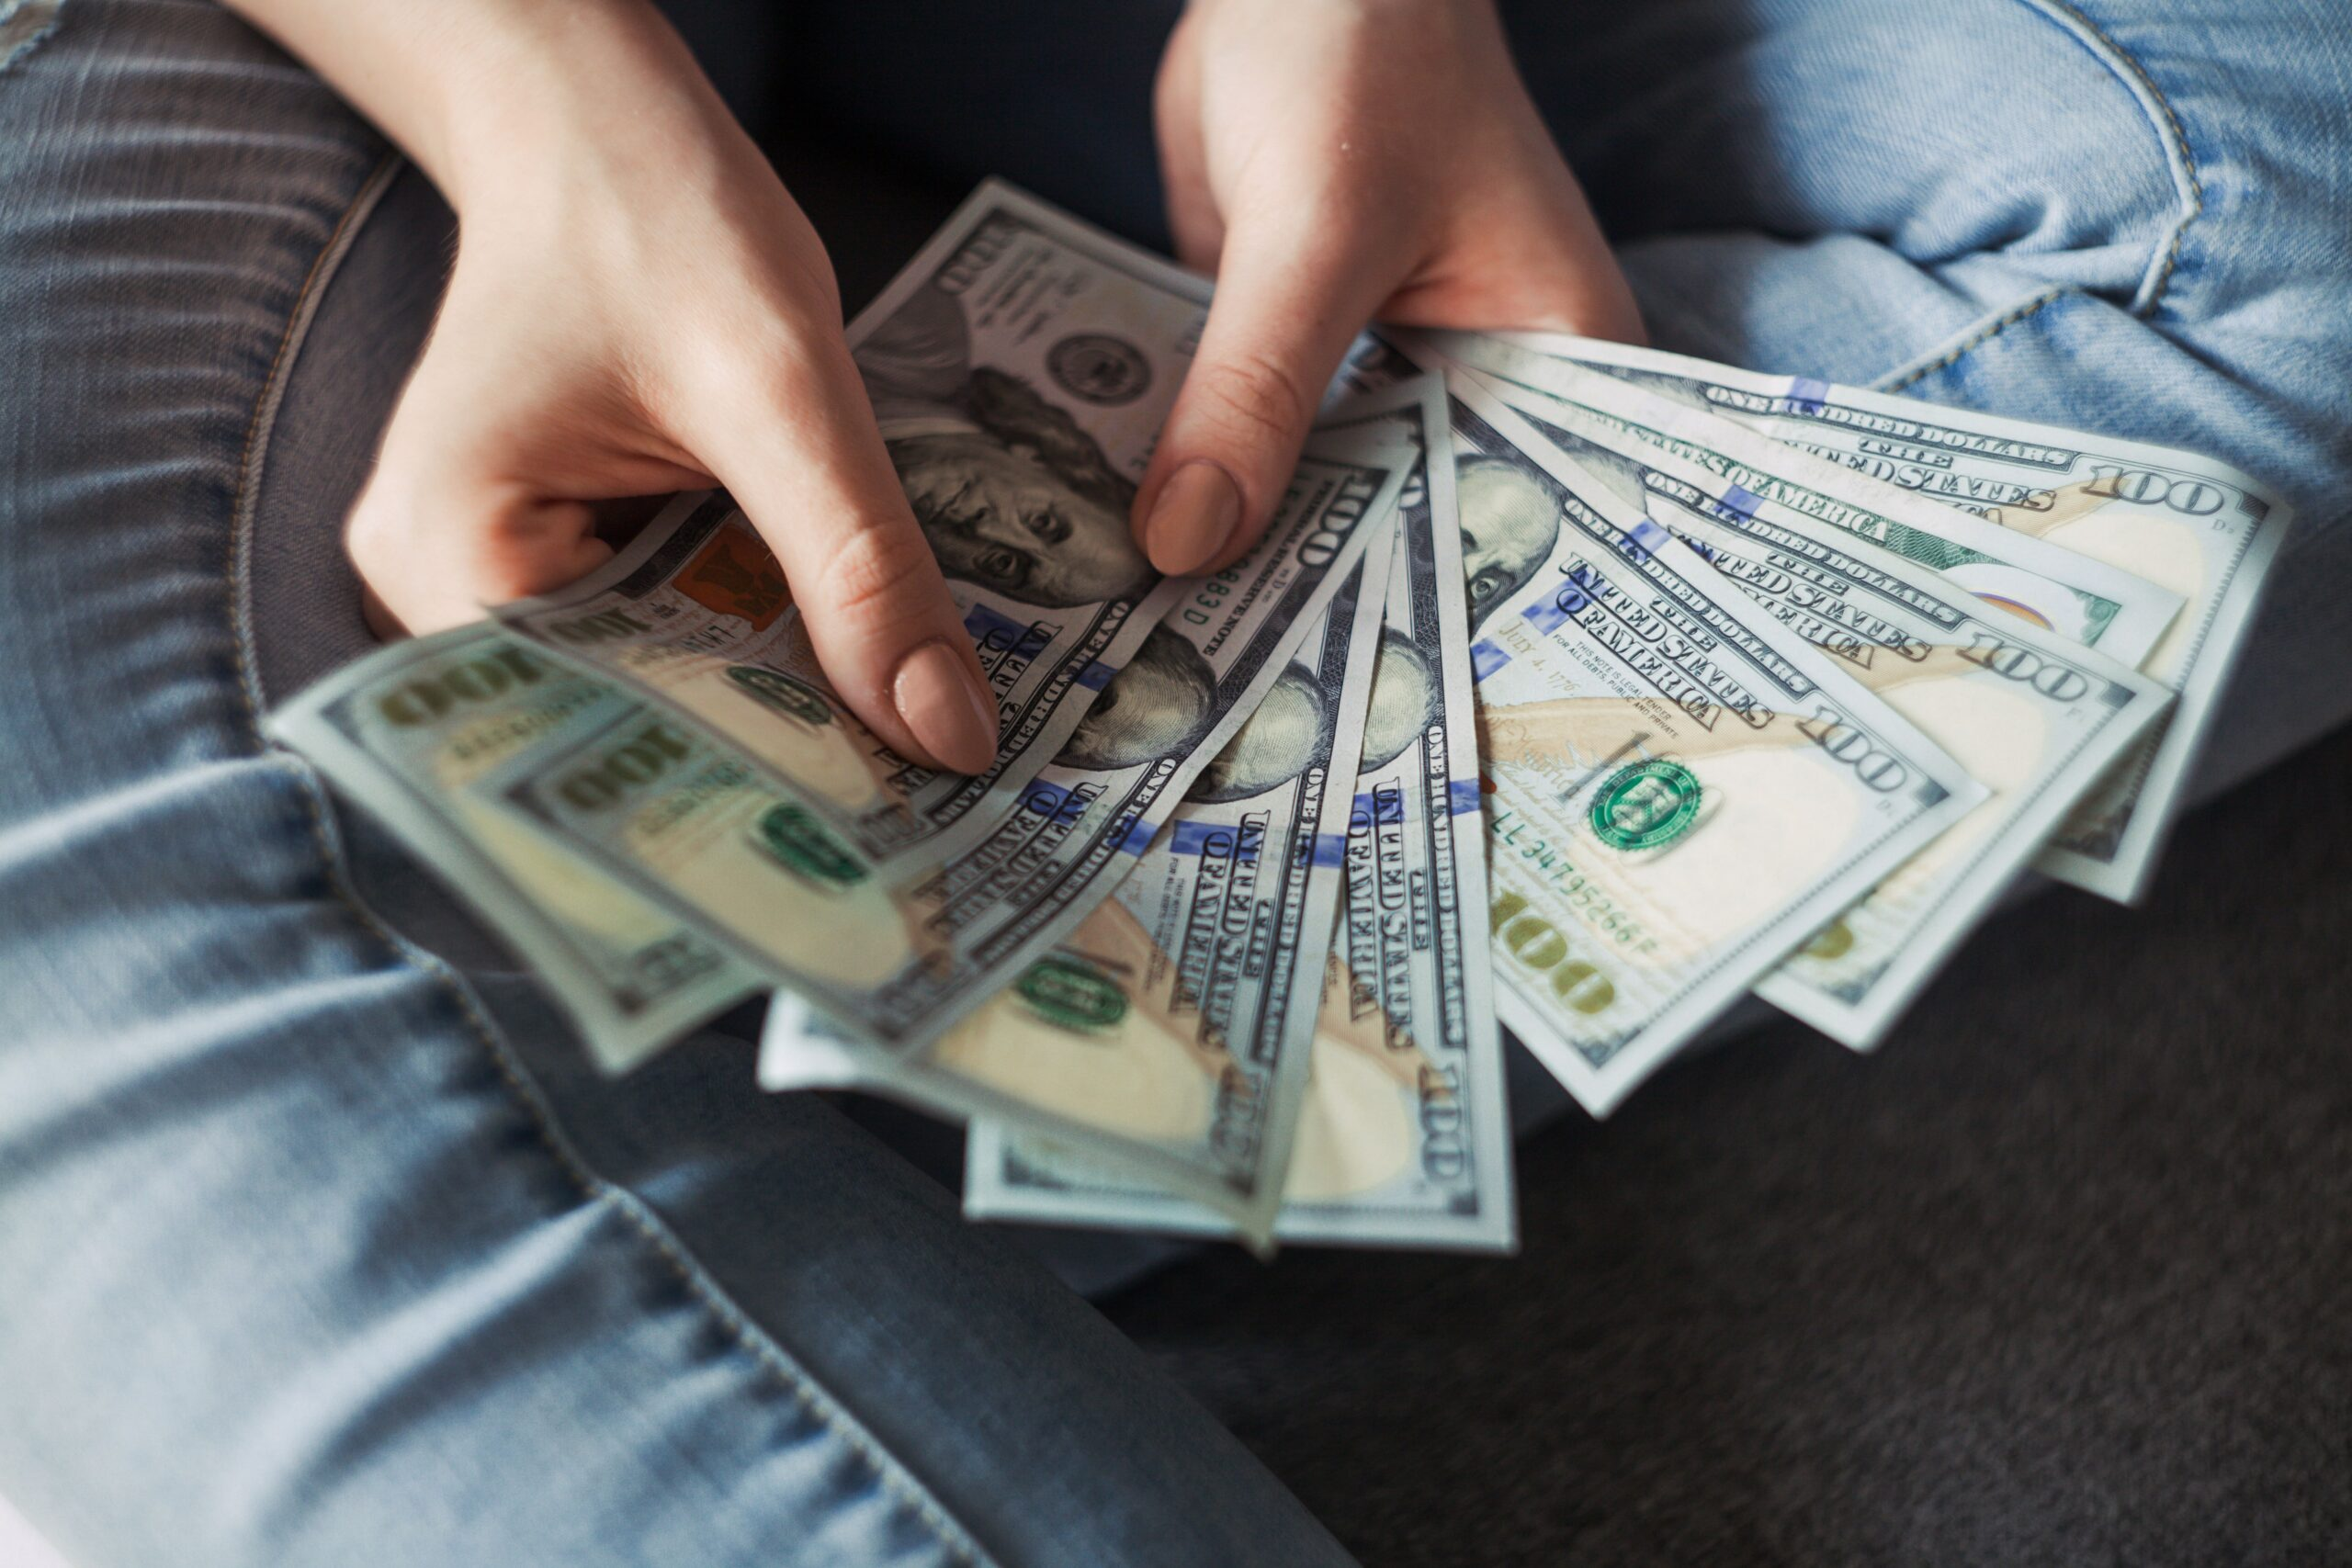 What-RD-jobs-make-the-most-money?